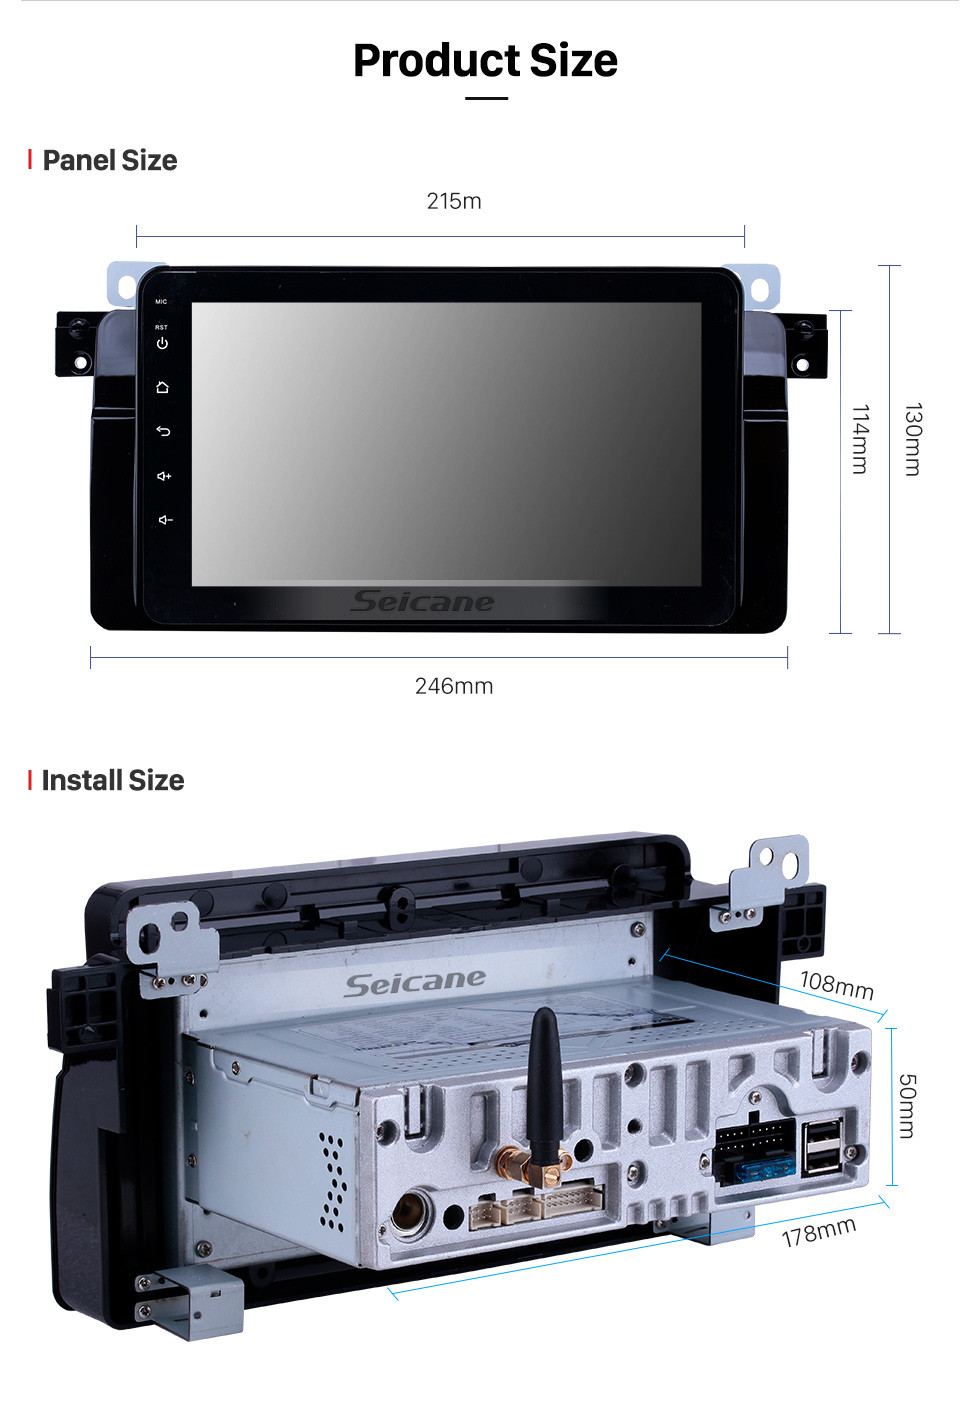 Seicane HD Touchscreen 8 inch Android 9.0 GPS Navigation Radio for 1998-2006 BMW 3 Series E46 M3/2001-2004 MG ZT/1999-2004 Rover 75 with Carplay Bluetooth support TPMS